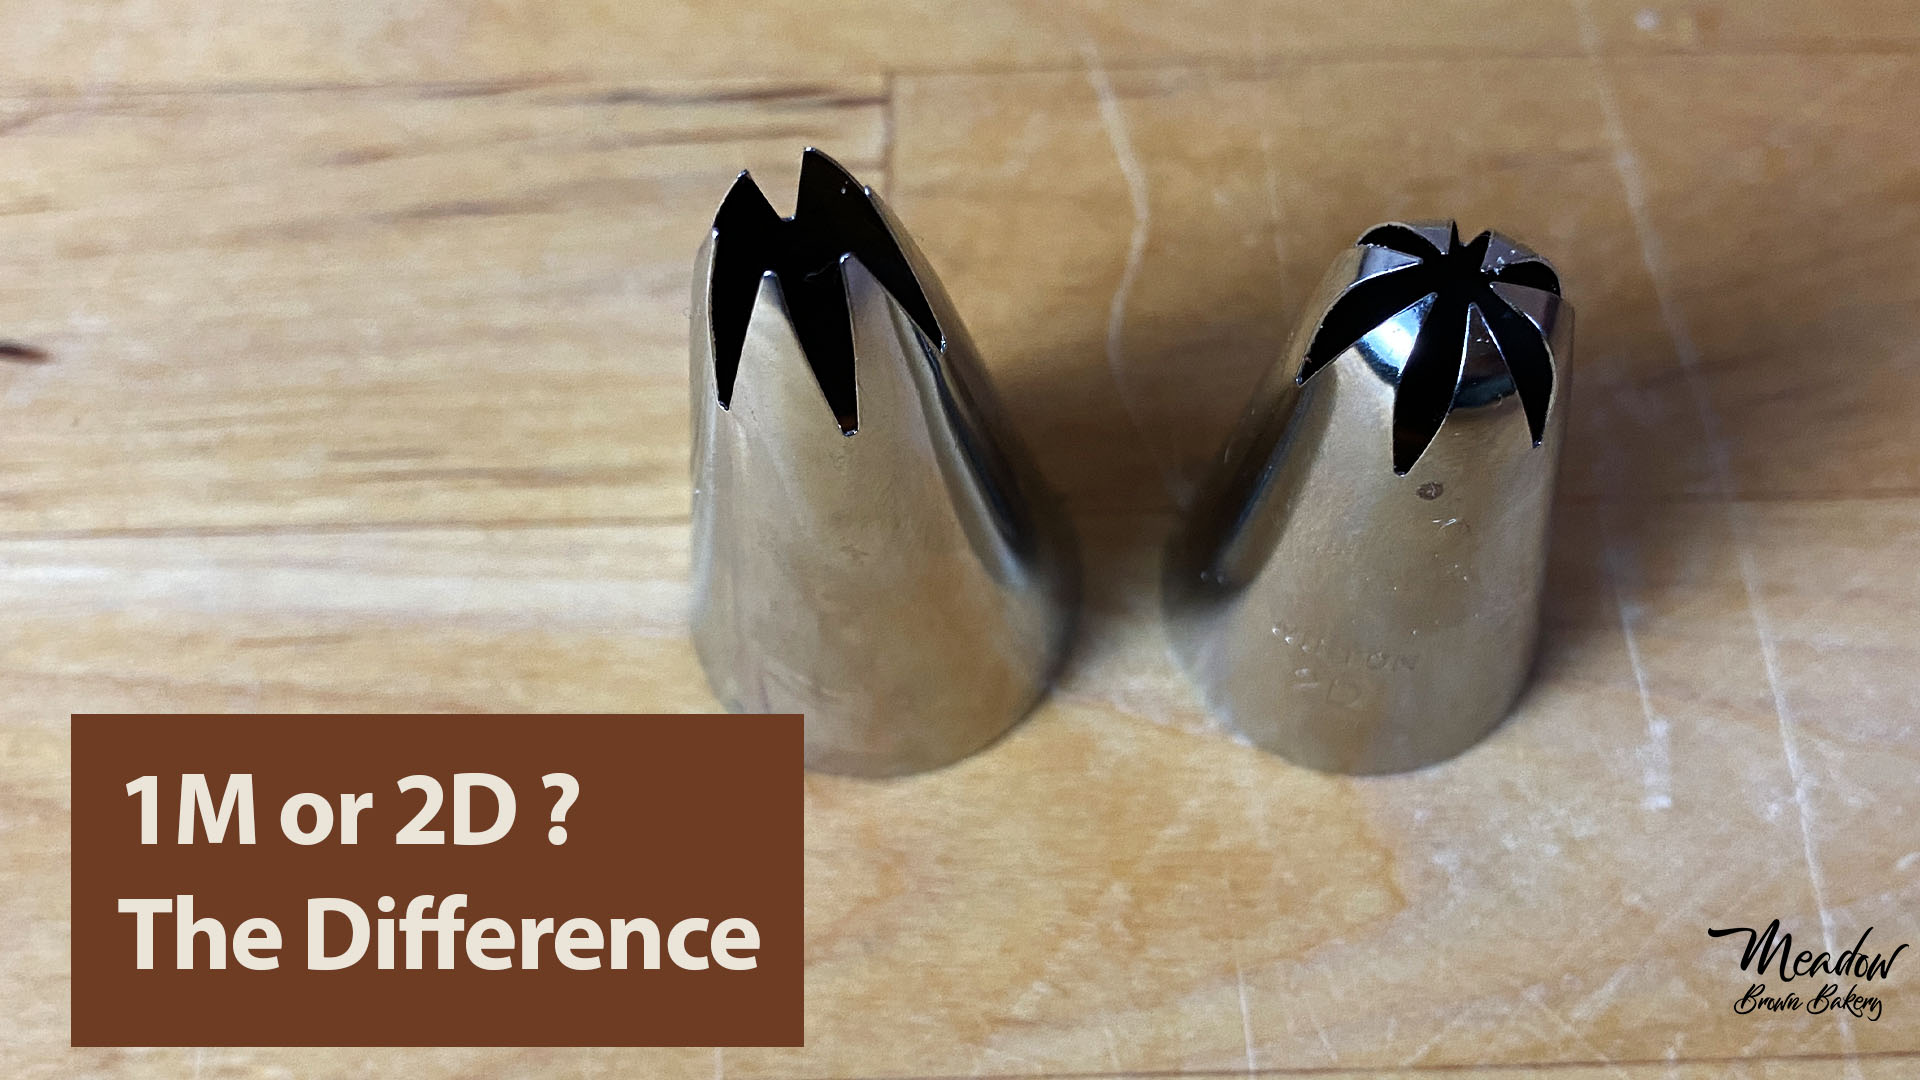 Difference between 1M and 2D piping tips